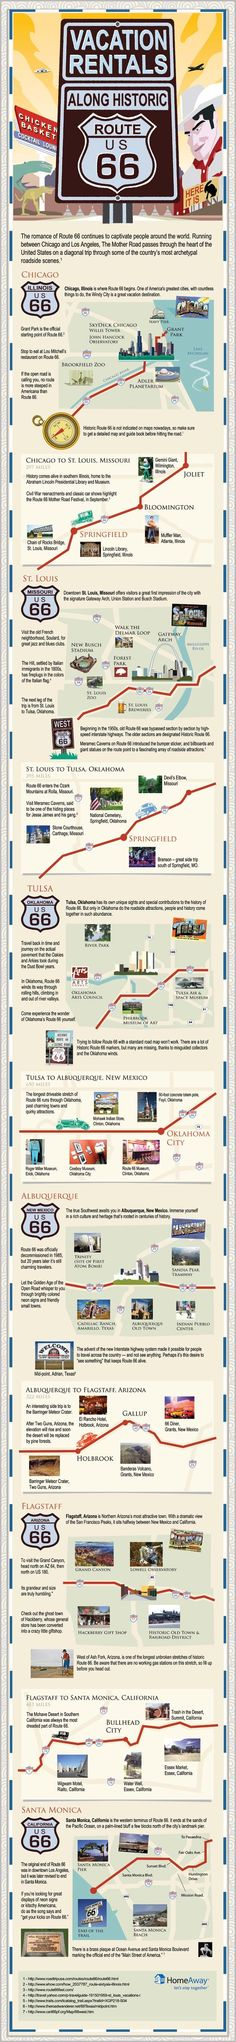 Things to do along historic Route 66 | Adventure is out there!